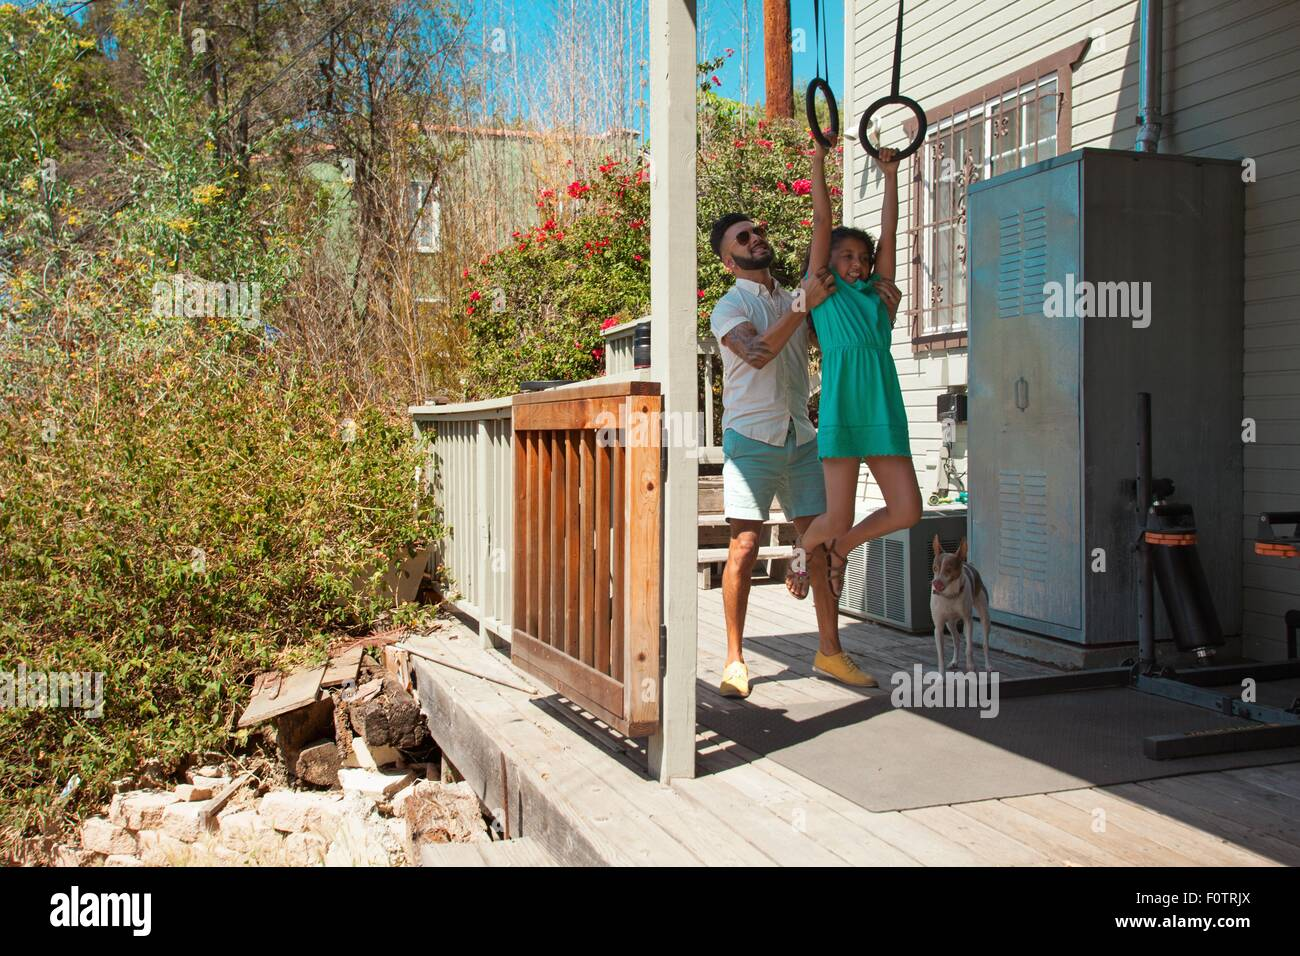 Mid adult man lifting daughter onto exercise rings on patio - Stock Image